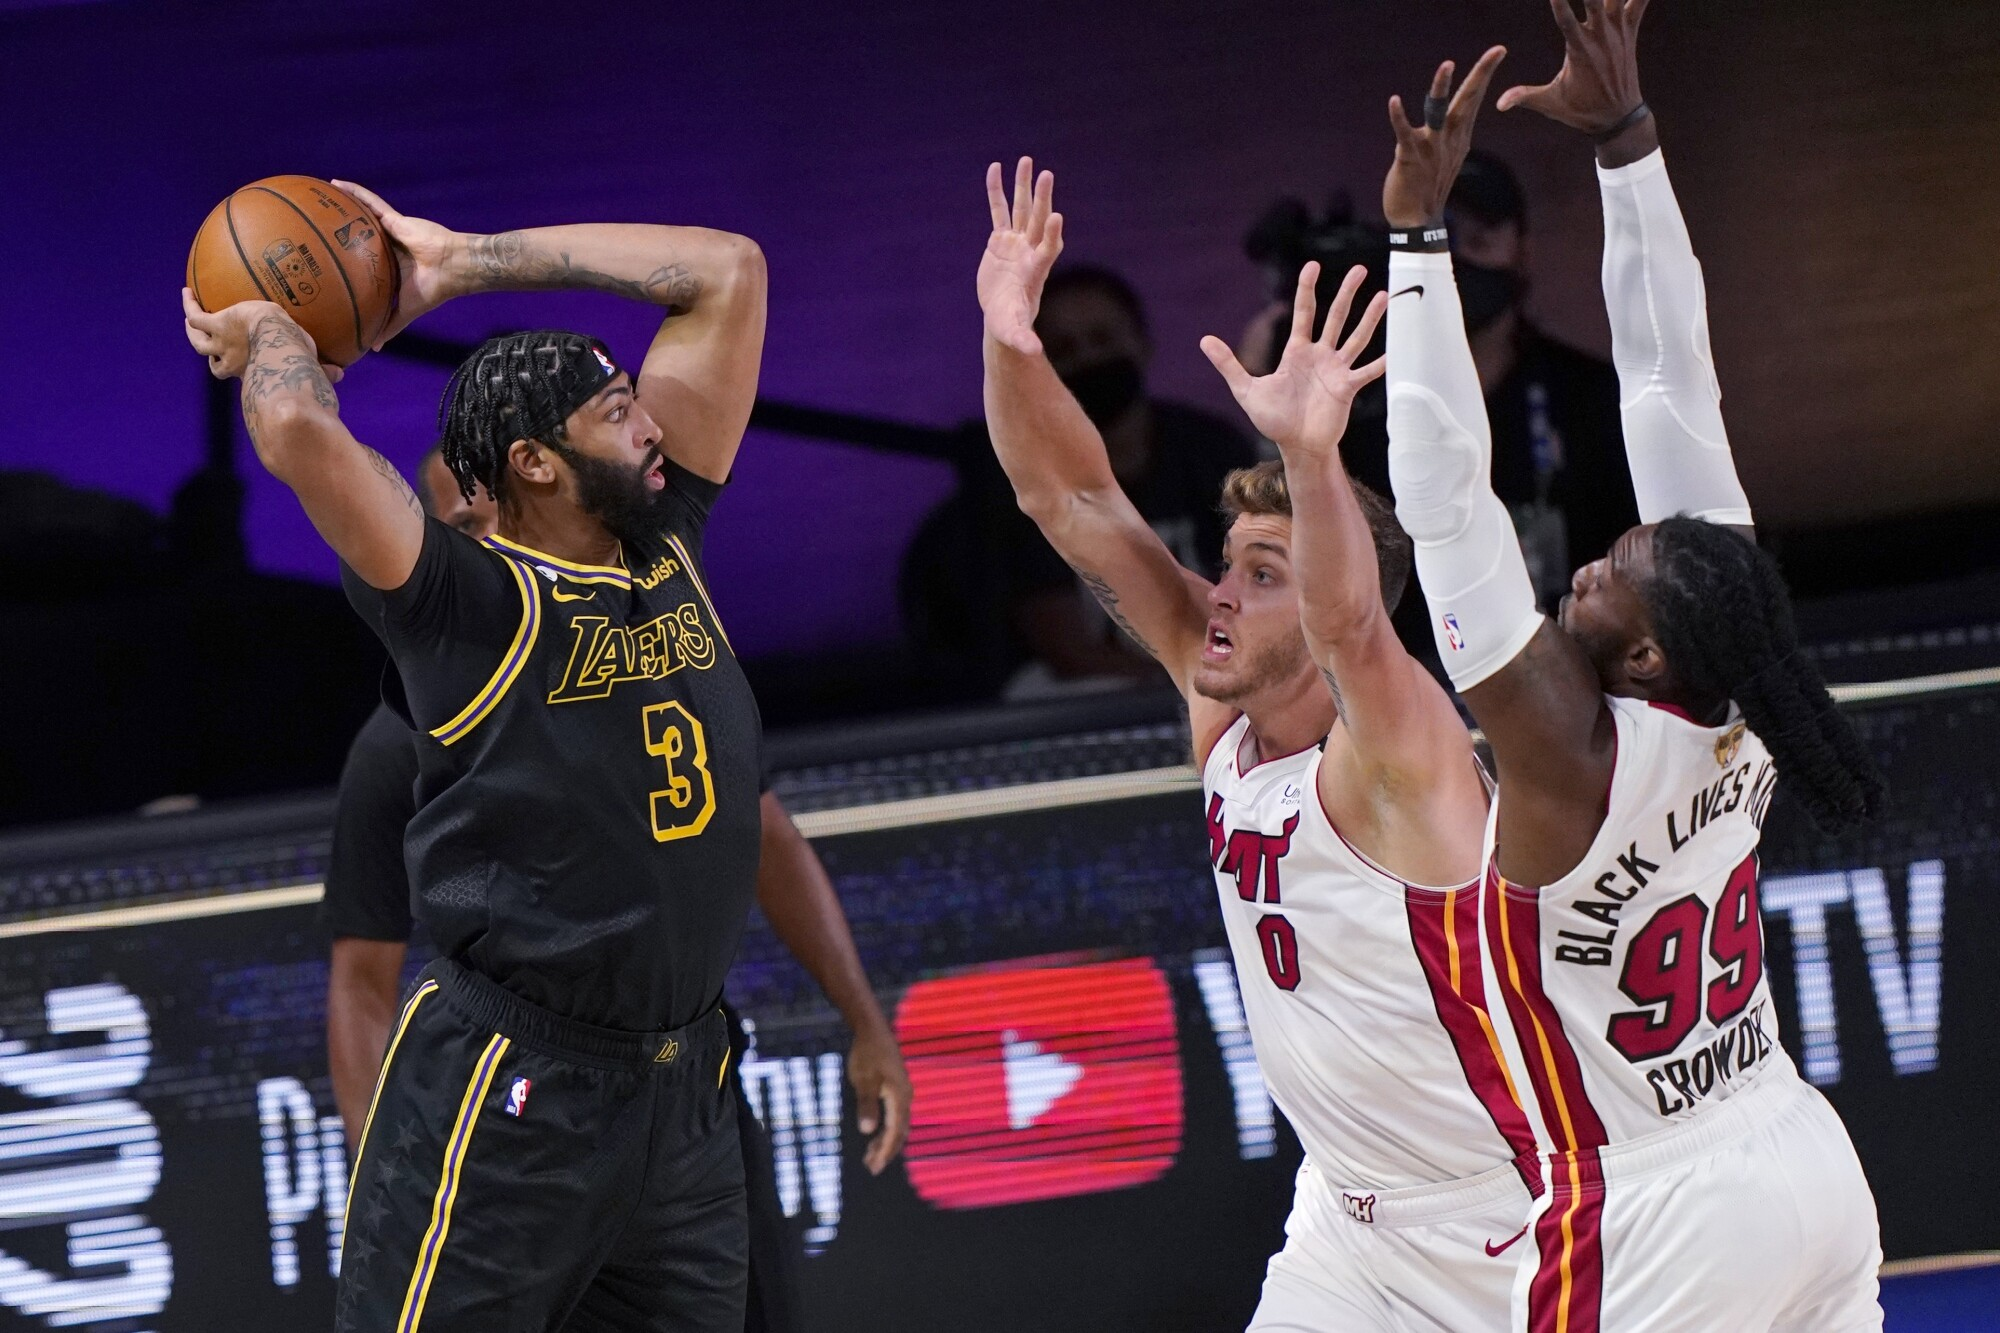 Lakers forward Anthony Davis looks to pass after grabbing a rebound against the Heat in Game 2.